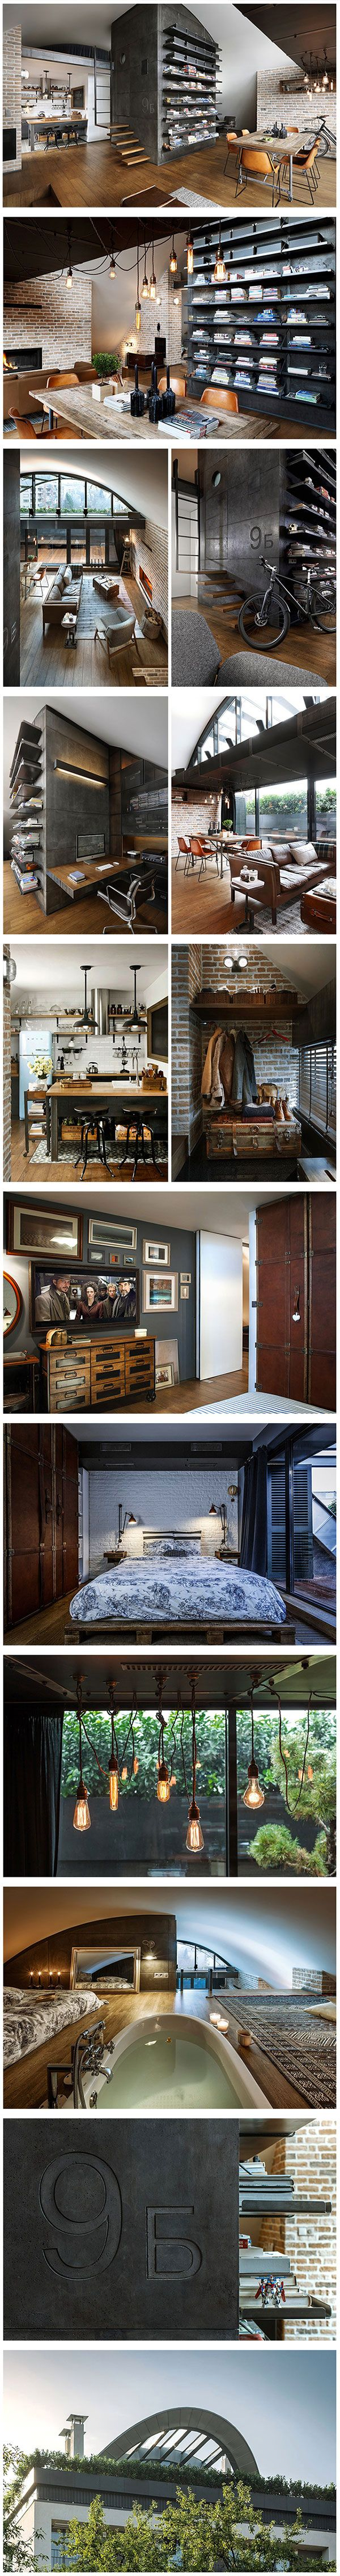 Attics: They're not just for crazy uncles anymore. In fact, interior designer…